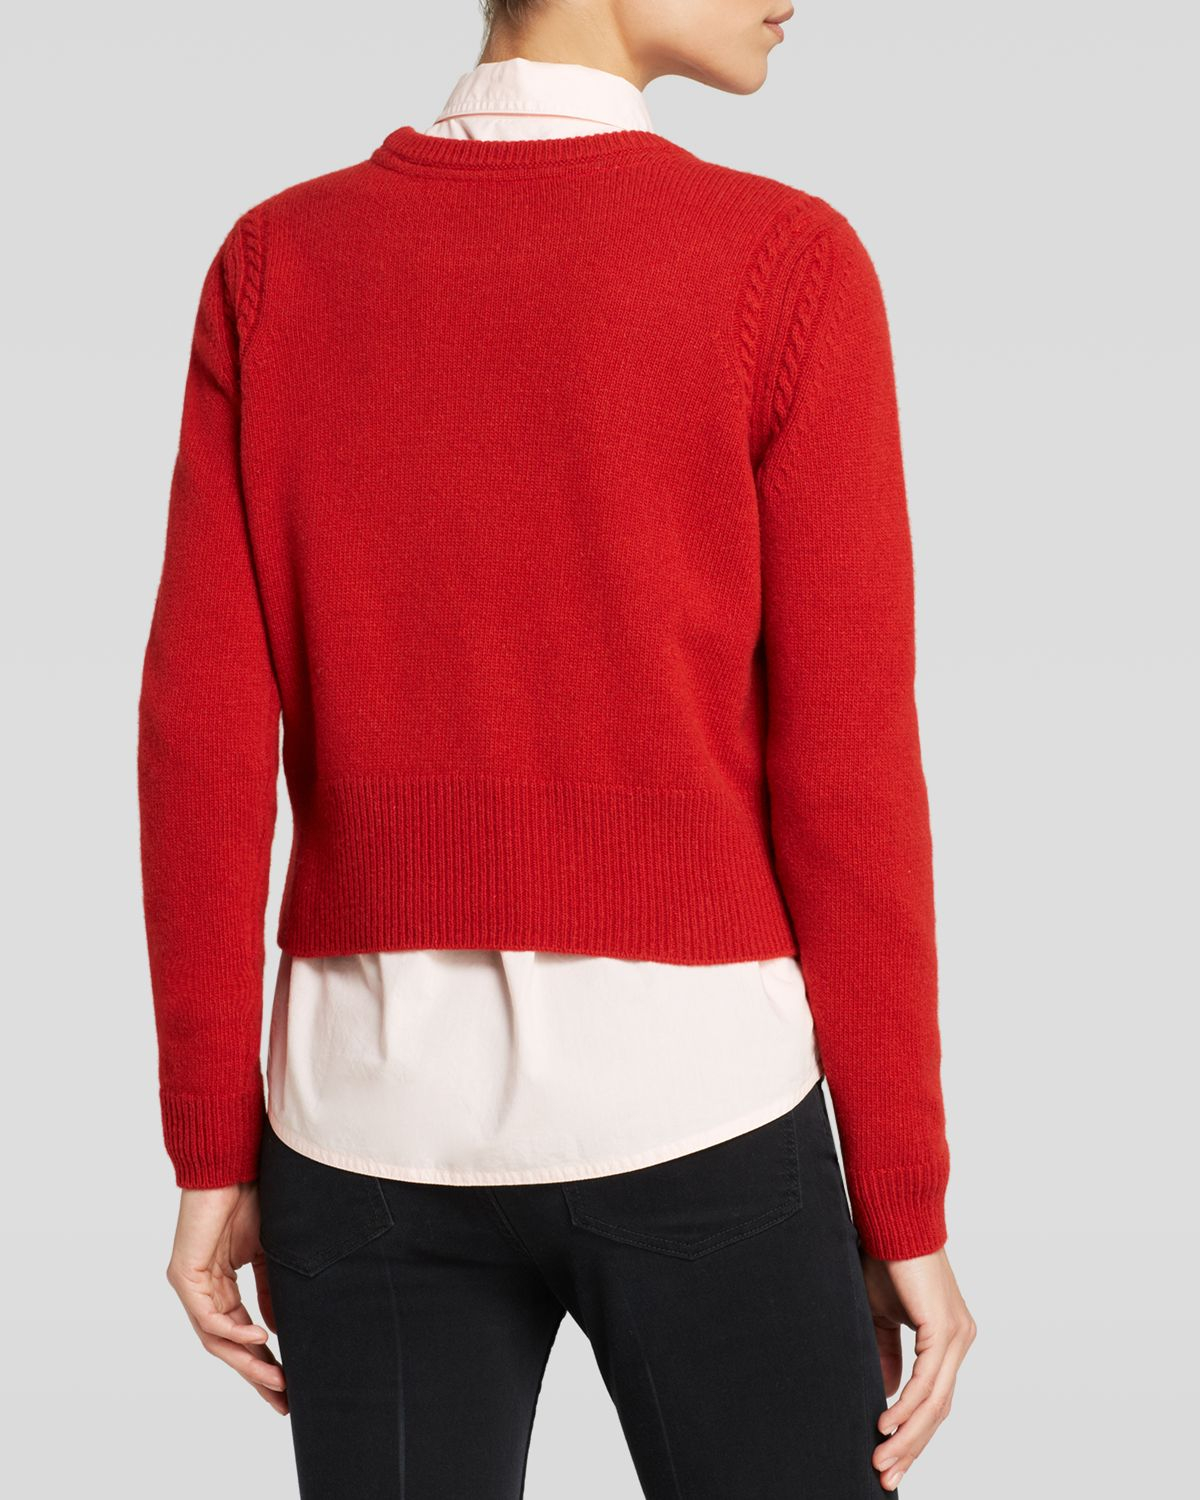 marc by marc jacobs sweater iris wool in red lyst. Black Bedroom Furniture Sets. Home Design Ideas